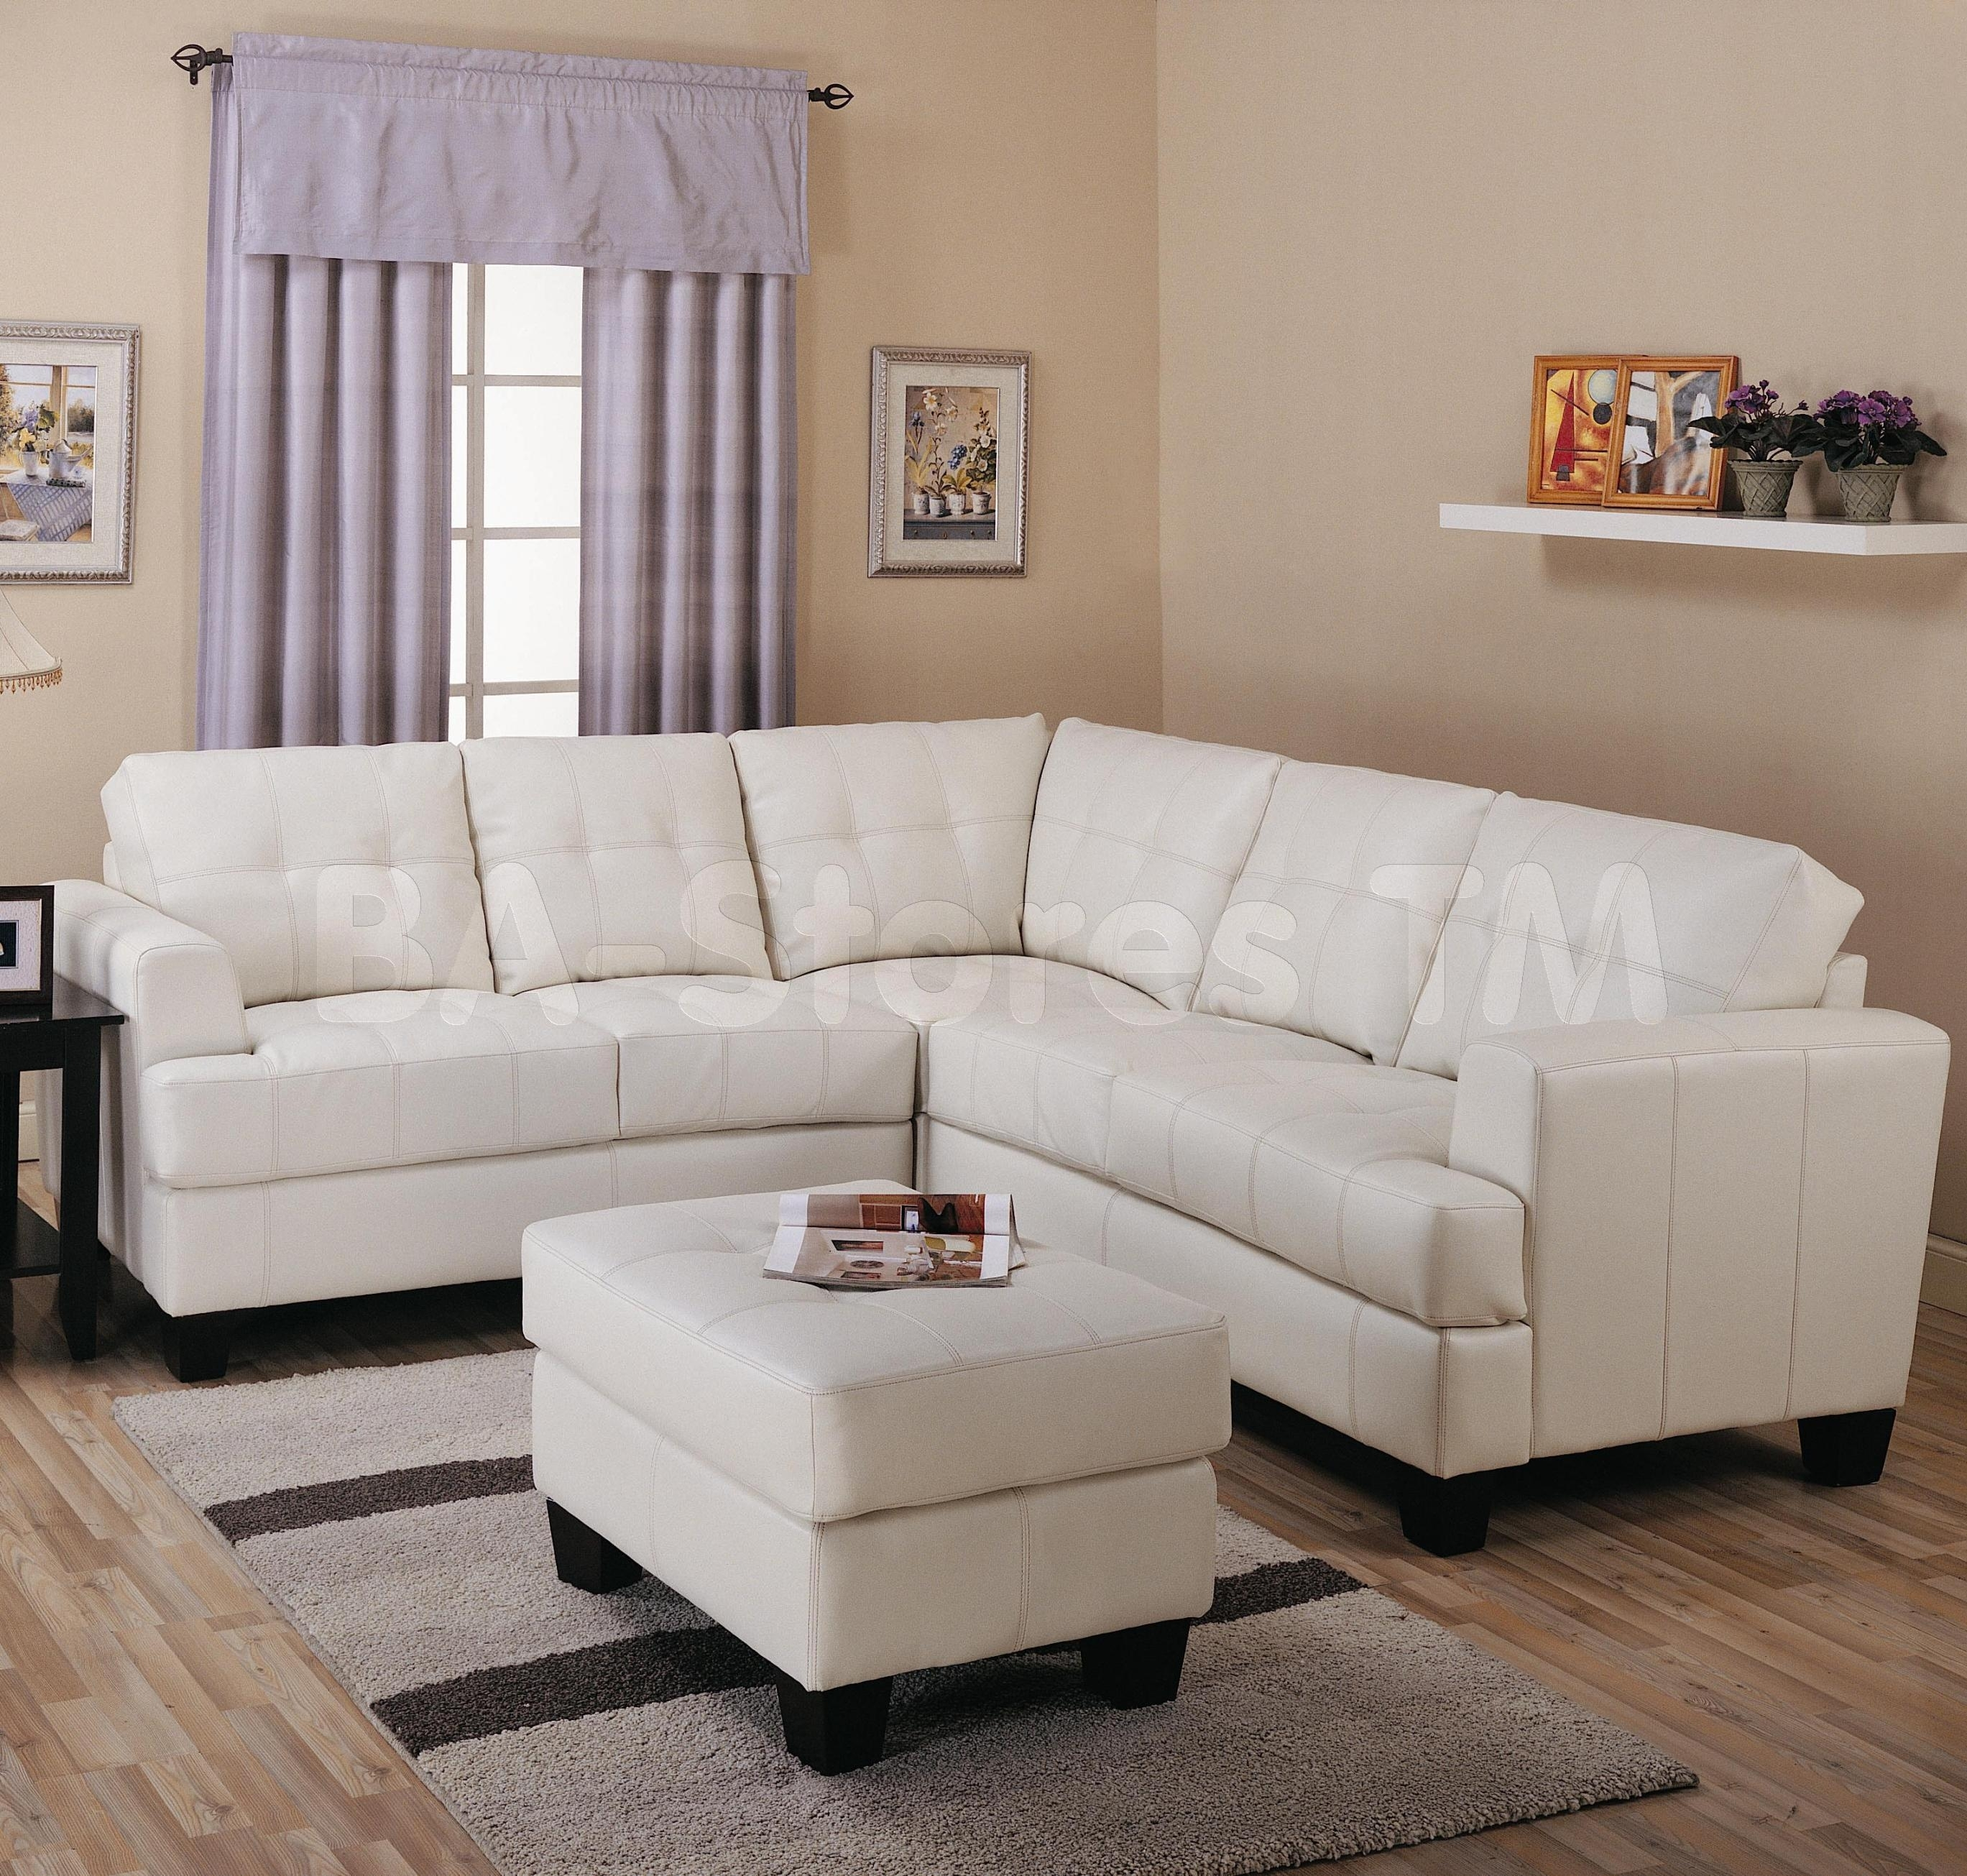 Living Room Sofa Used Sectional Sofas For Sale Toronto Best Home Pertaining To Ontario Sectional Sofas (View 3 of 10)